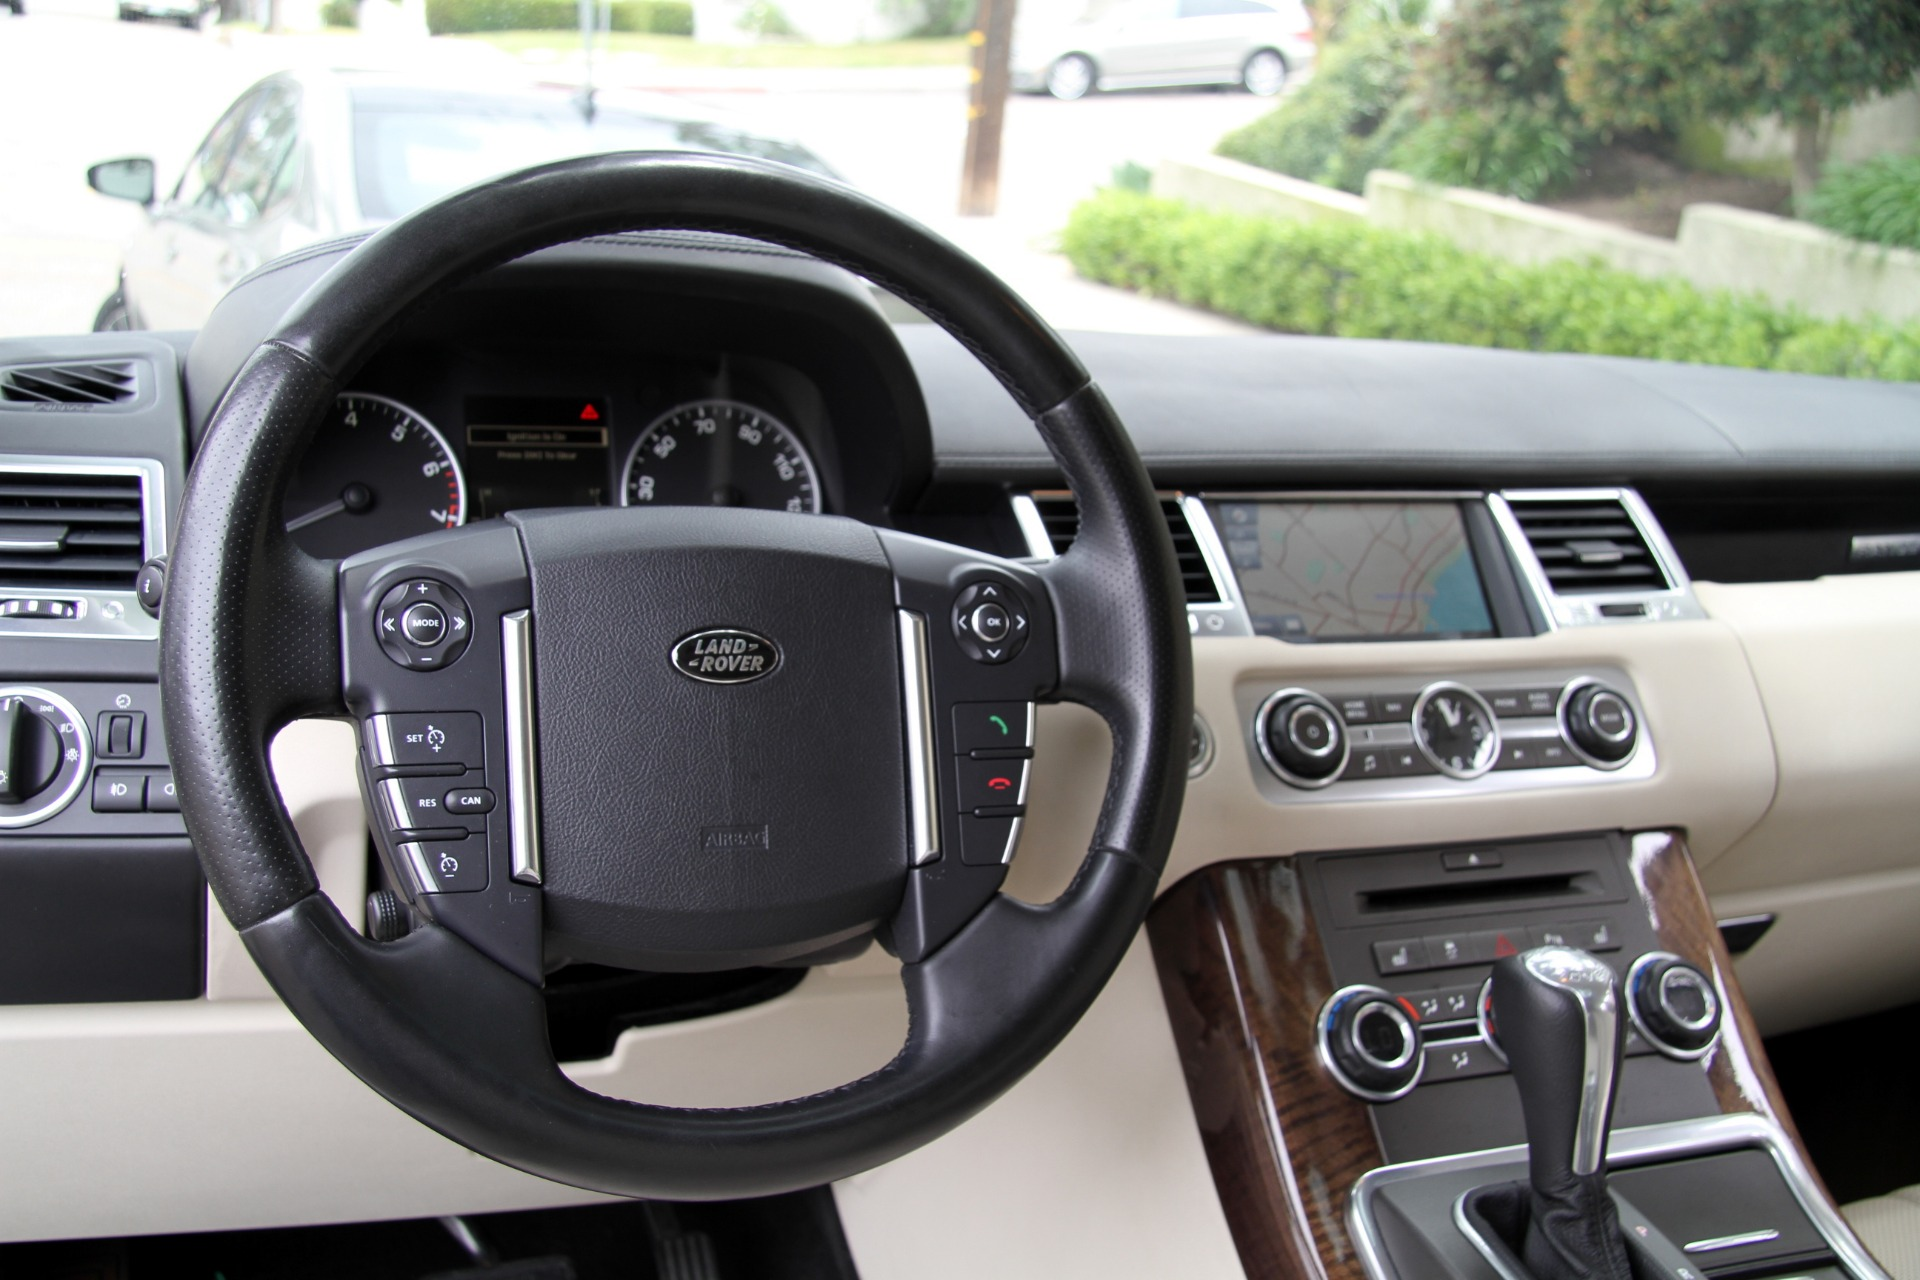 Land Rover Dealer Near Me >> 2011 Land Rover Range Rover Sport HSE *** LUXURY PACKAGE ...